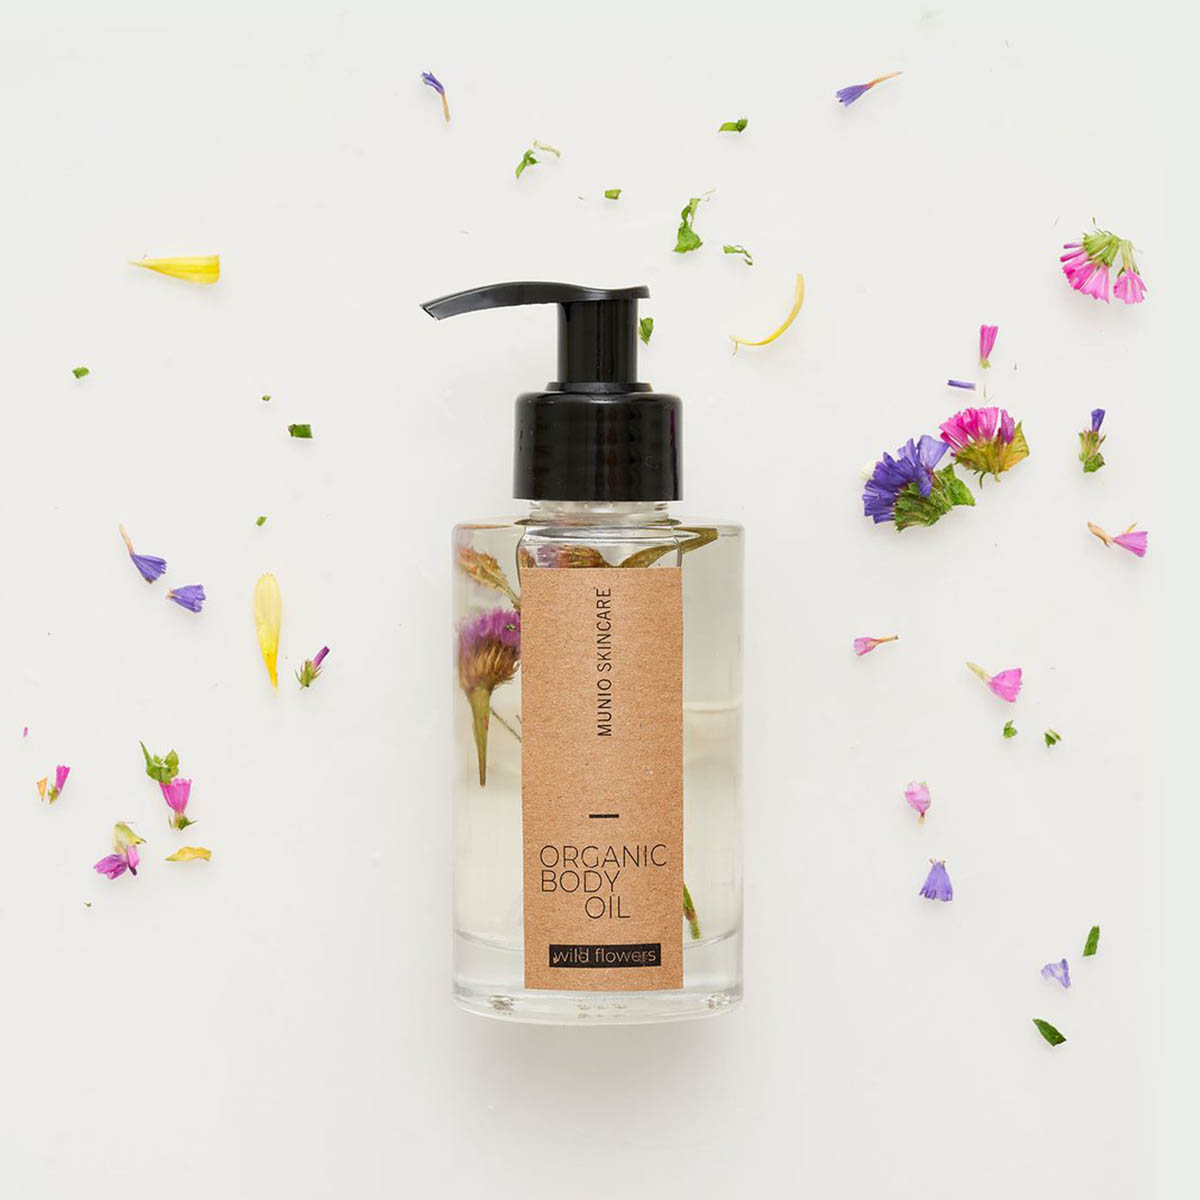 the-munio-wild-flower-oil-skincare